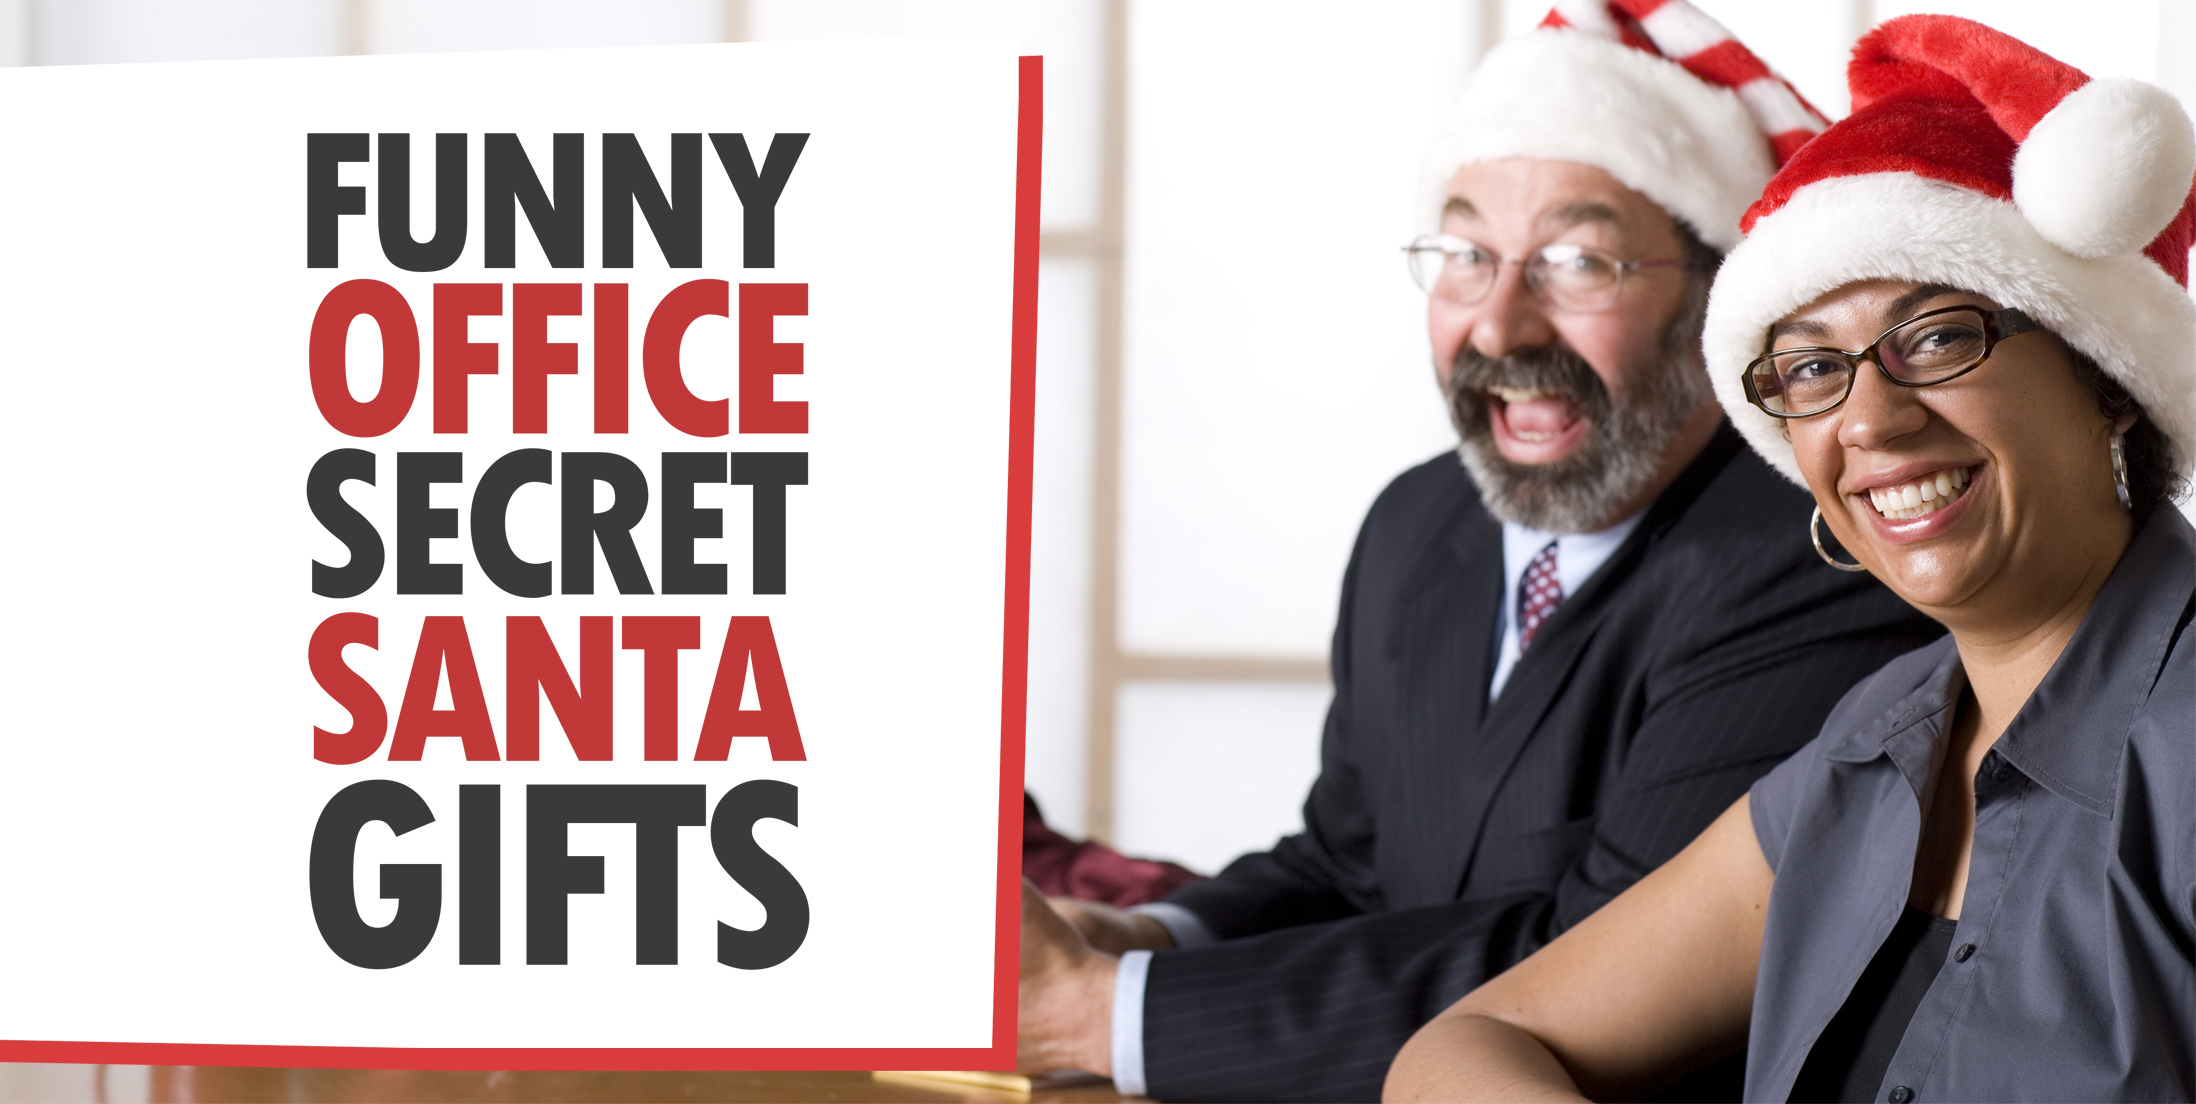 Funny Office Secret Santa Gifts